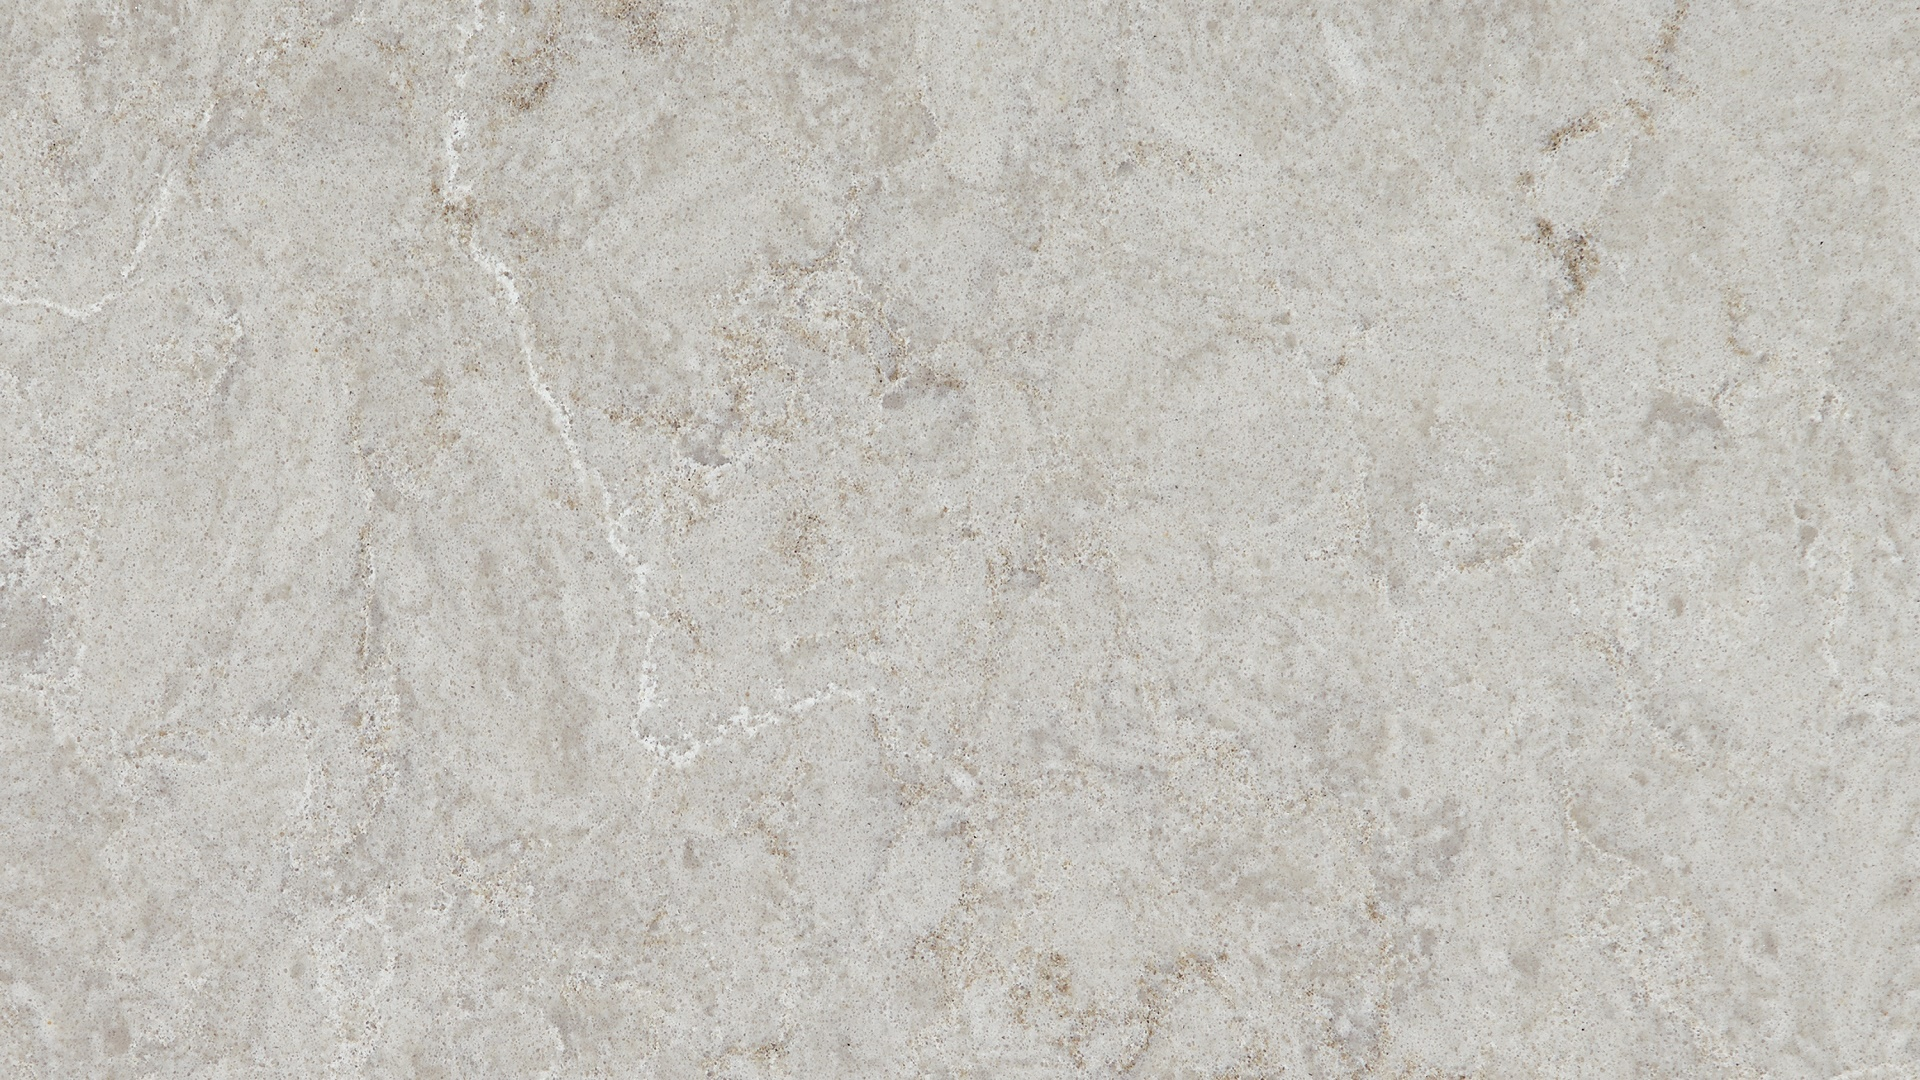 Caesarstone Countertop Thickness Caesarstone Bianco Drift Remnant Finder Finding You